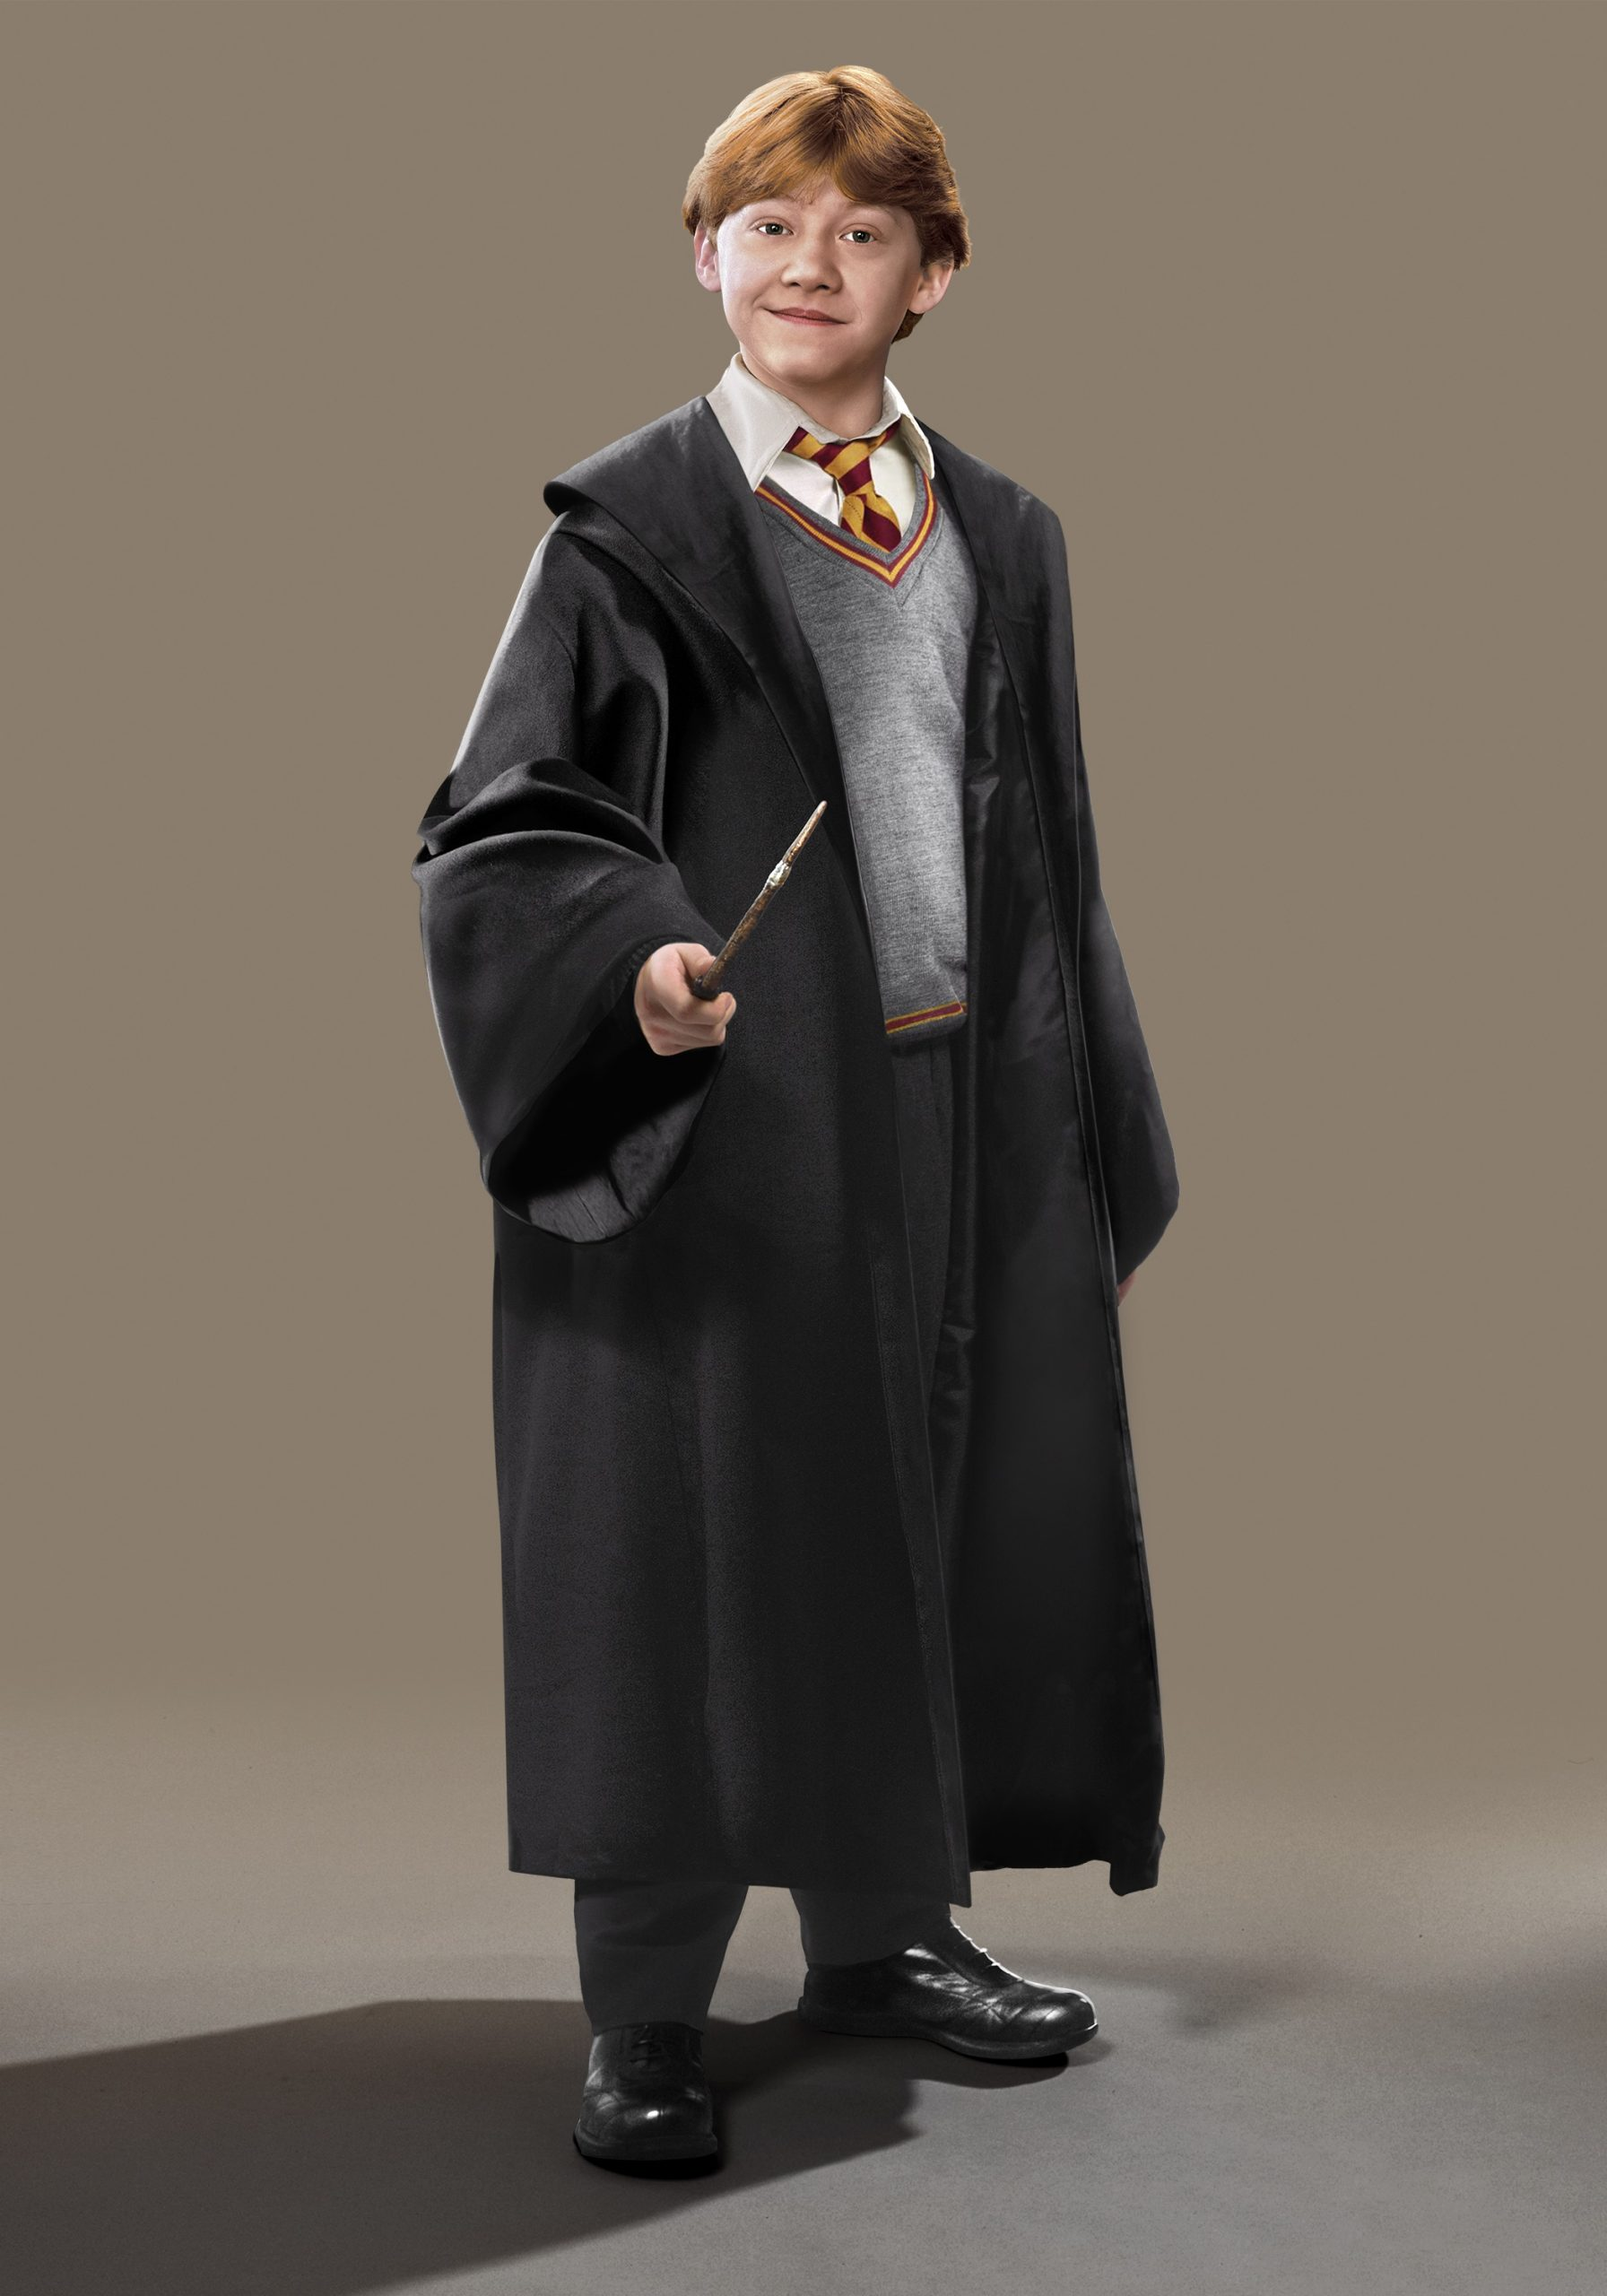 harry potter ron personnage